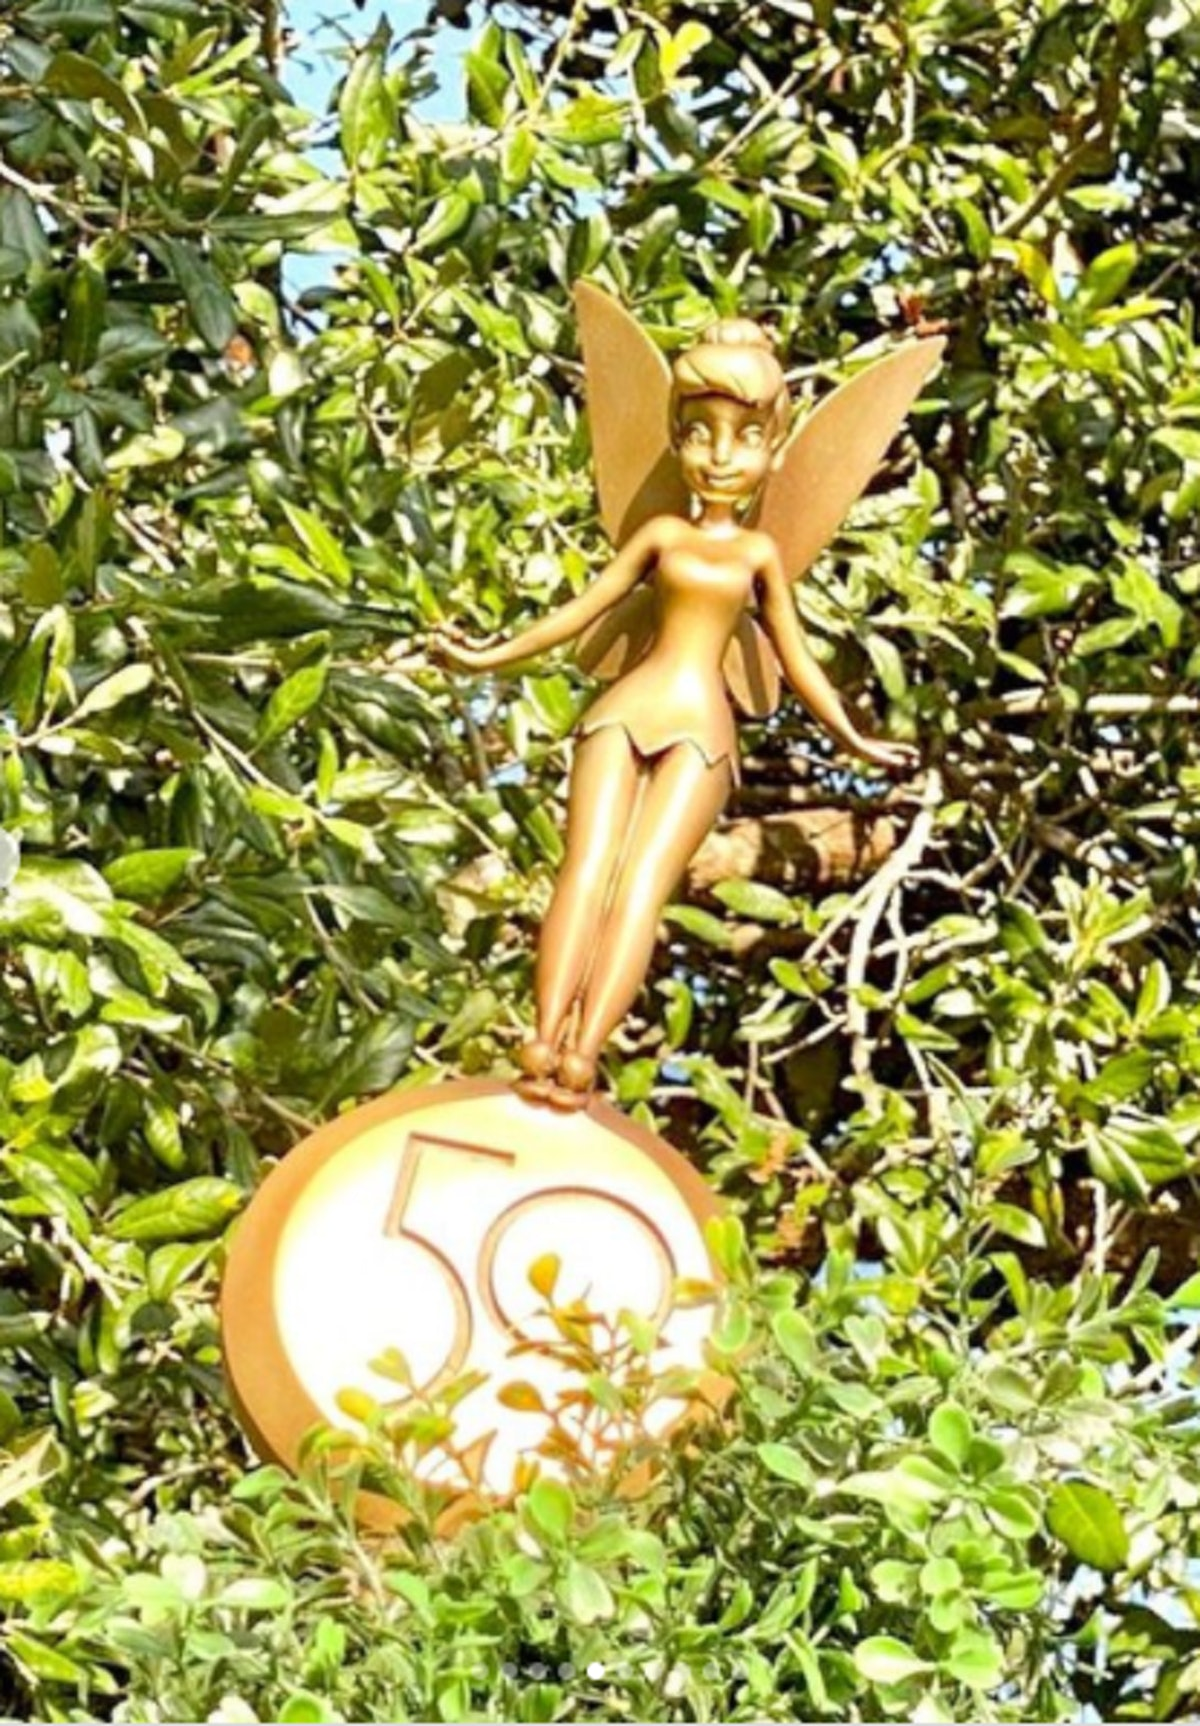 These photos of Disney's gold statutes for the 50th anniversary include Tinkerbell.